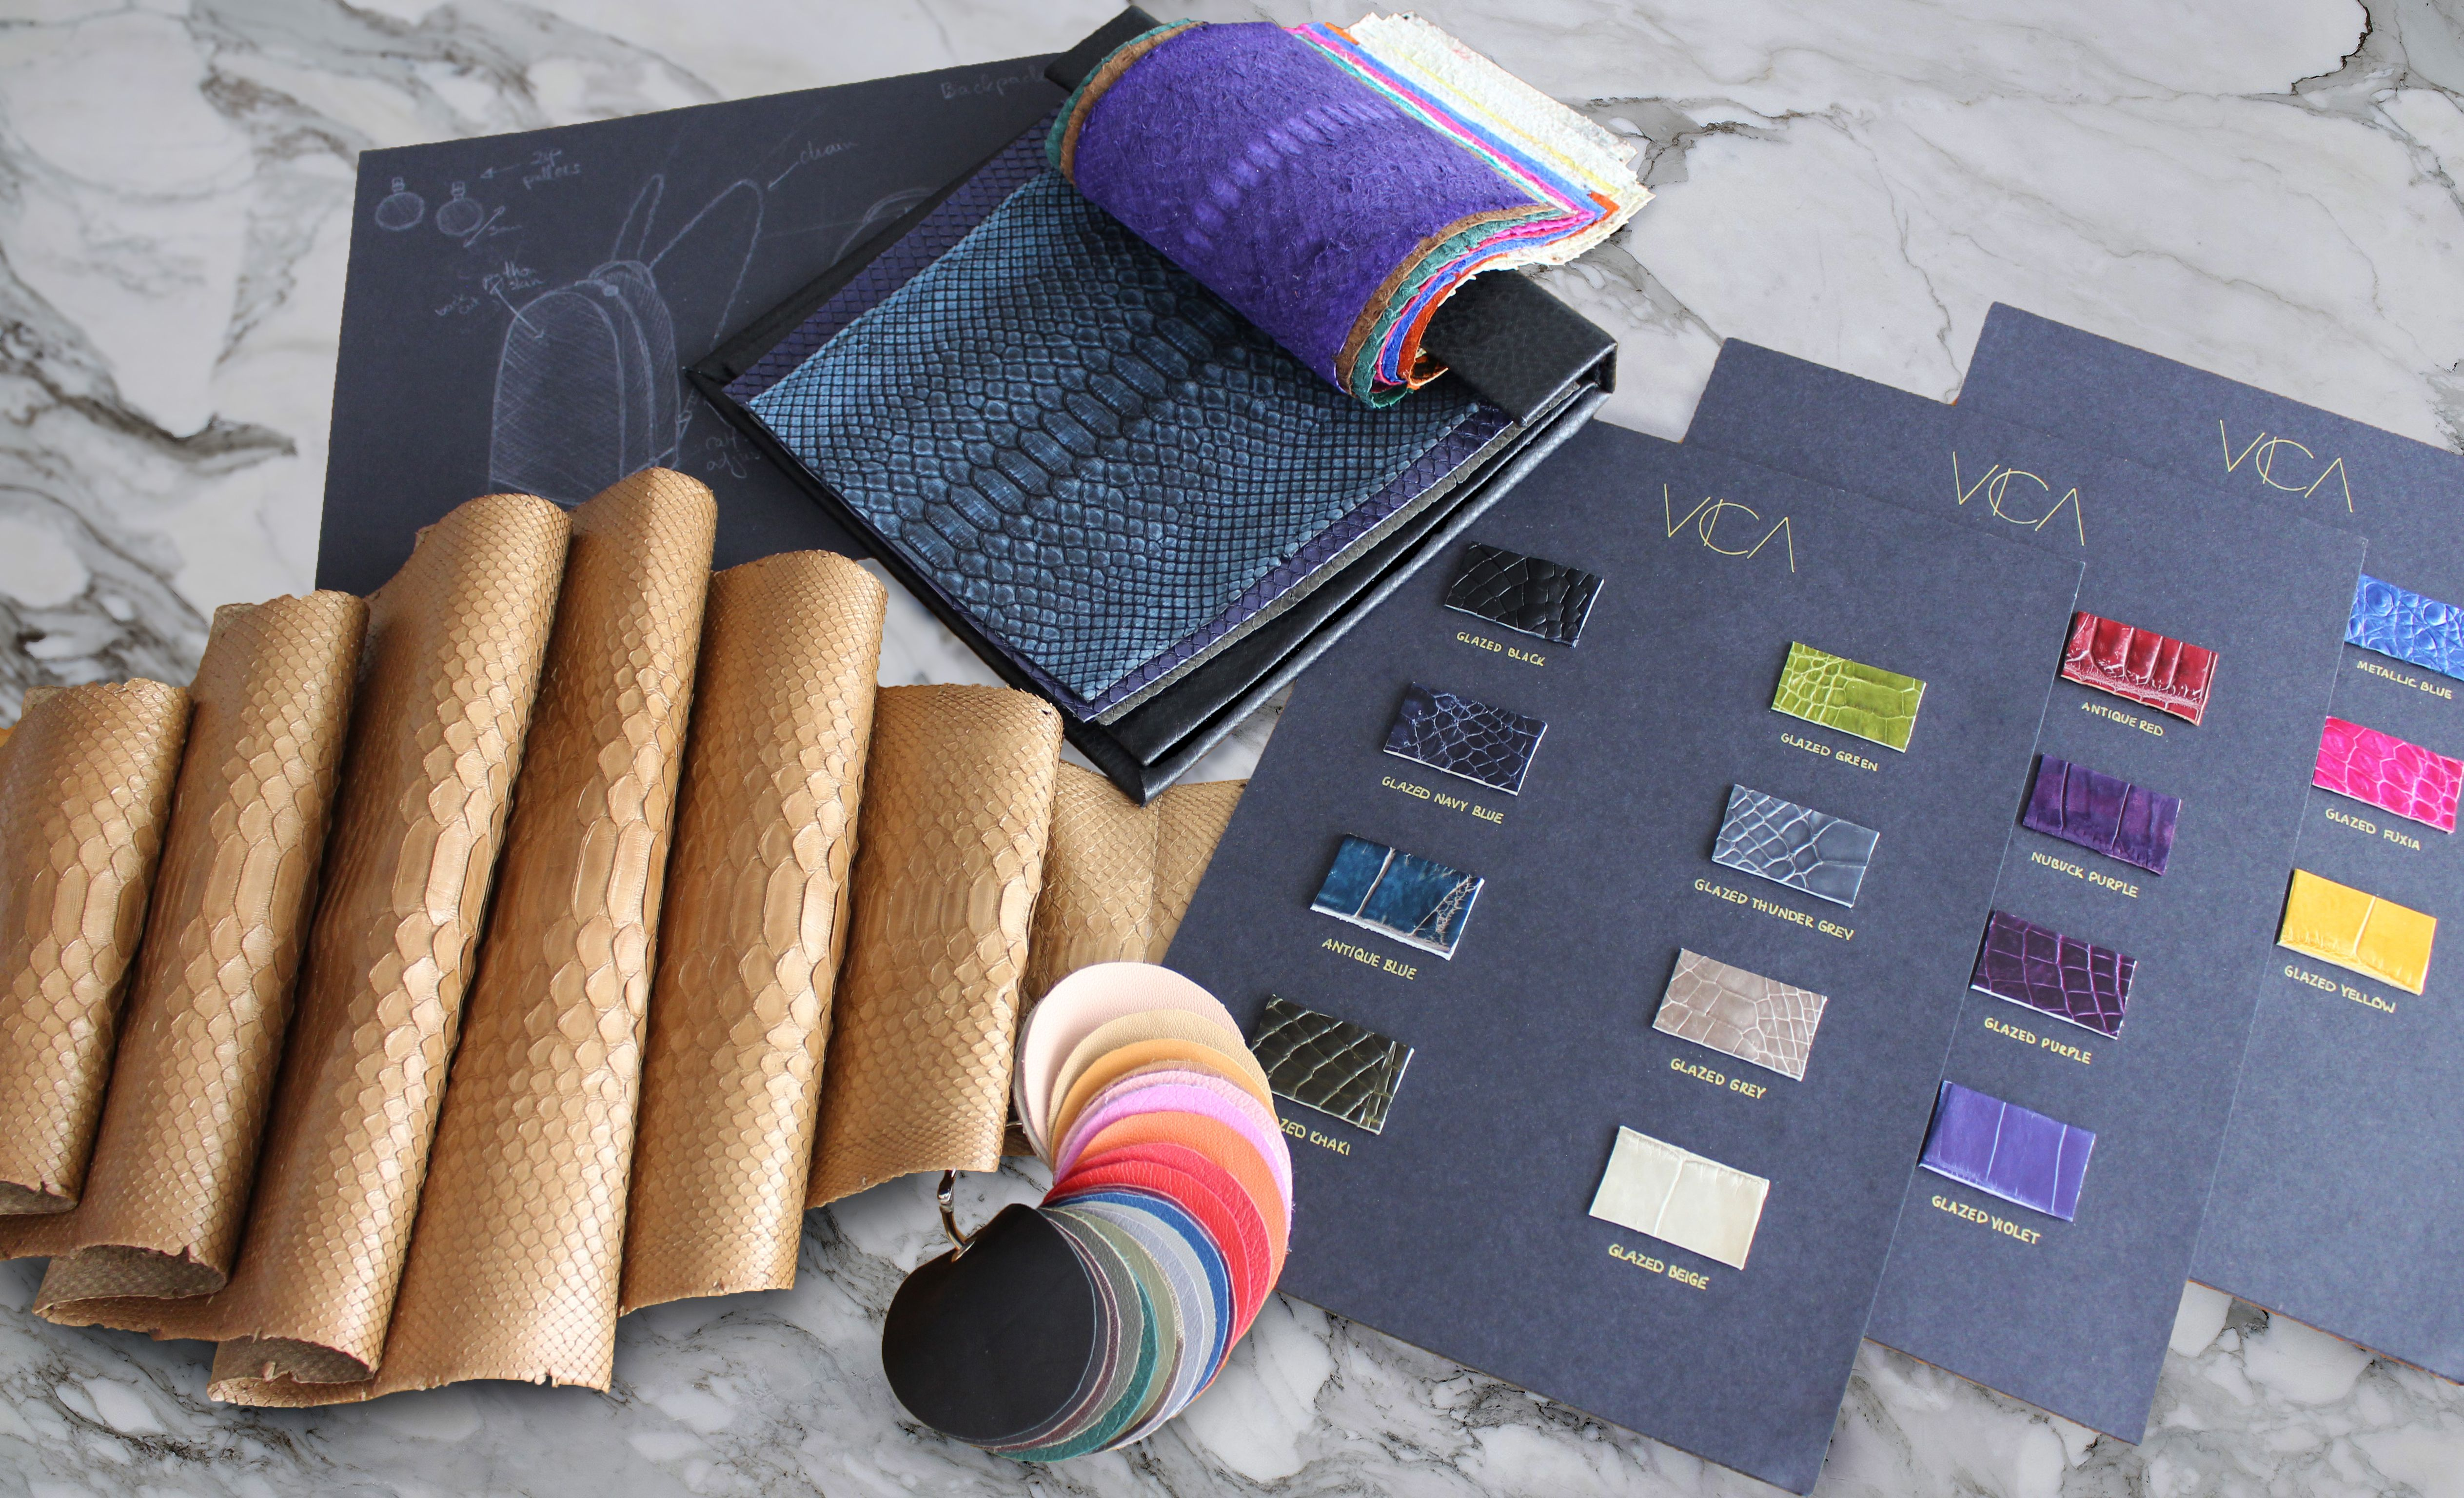 Exotic leather swatches www.vicacustom.com - vica custom - victoria chi - exotic skin bags - custom leather bags - custom handbags - custom purses - exotic skins - custom bags